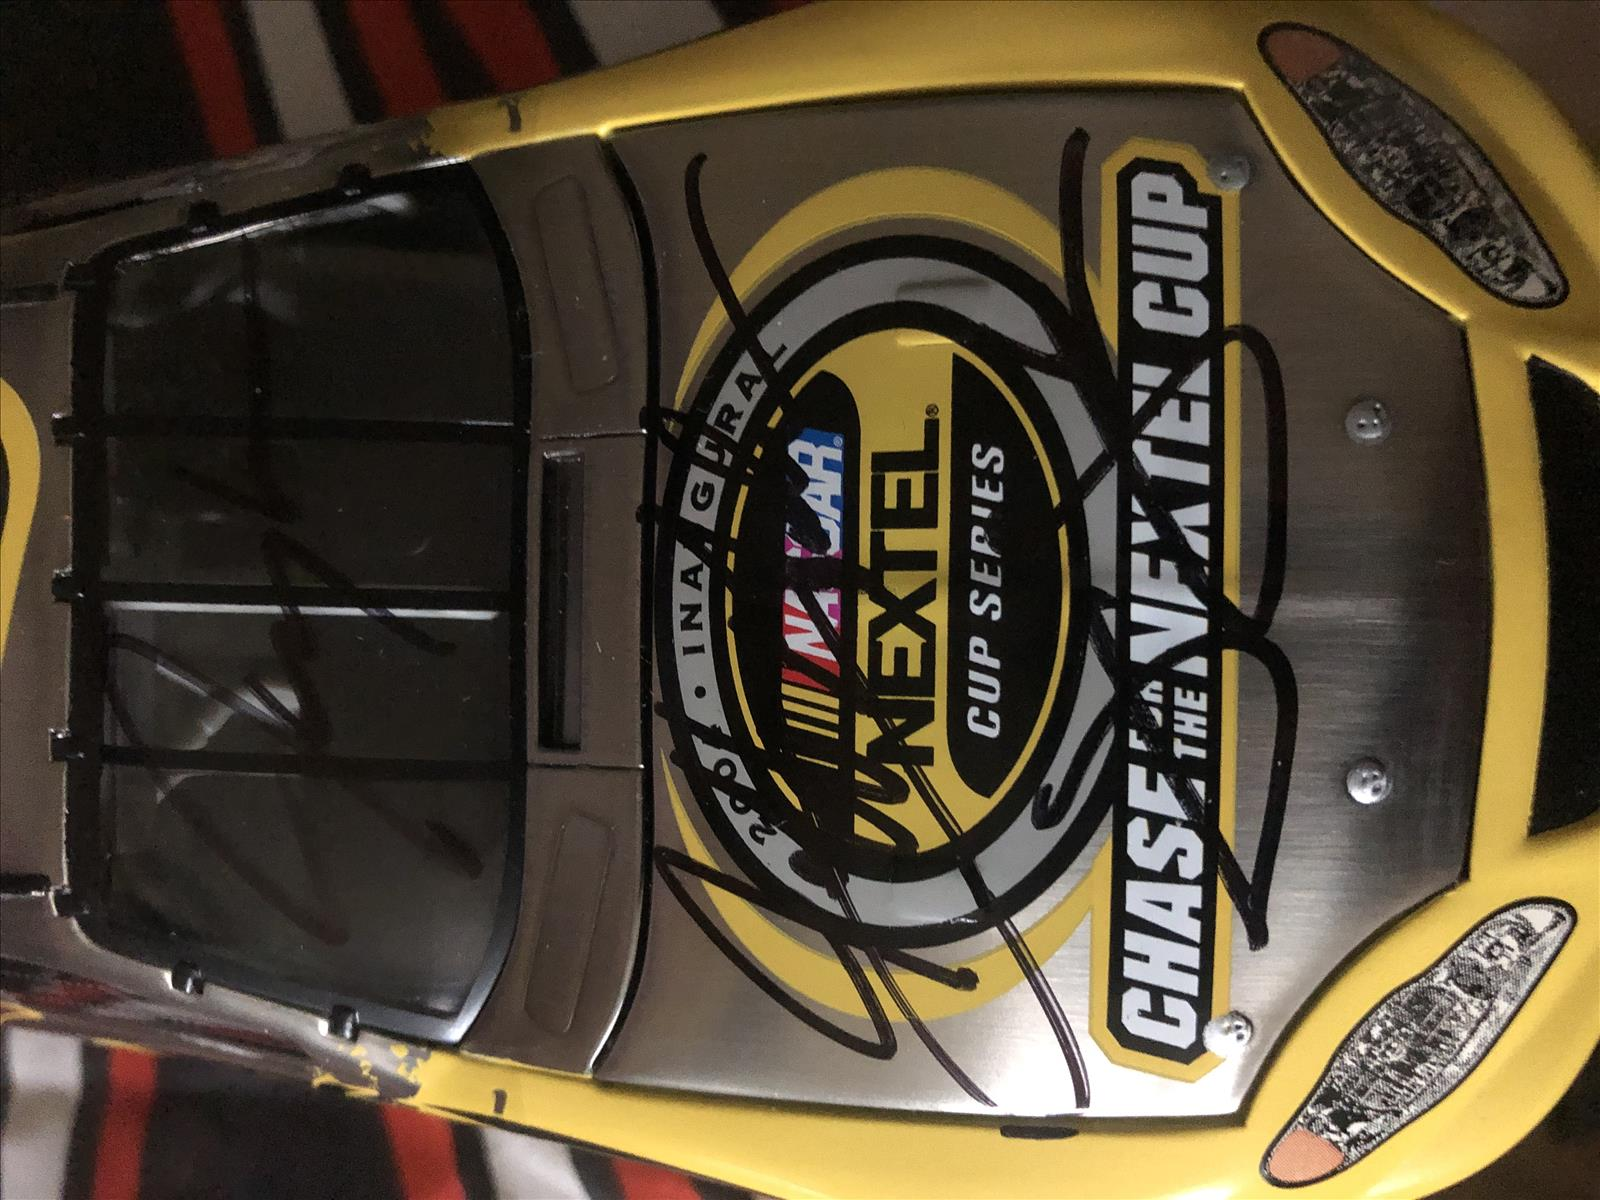 2004 NASCAR Diecast 04 Nextel Cup CHase CWC 1:24 Action RCCA Club Car Brushed Metal 1b